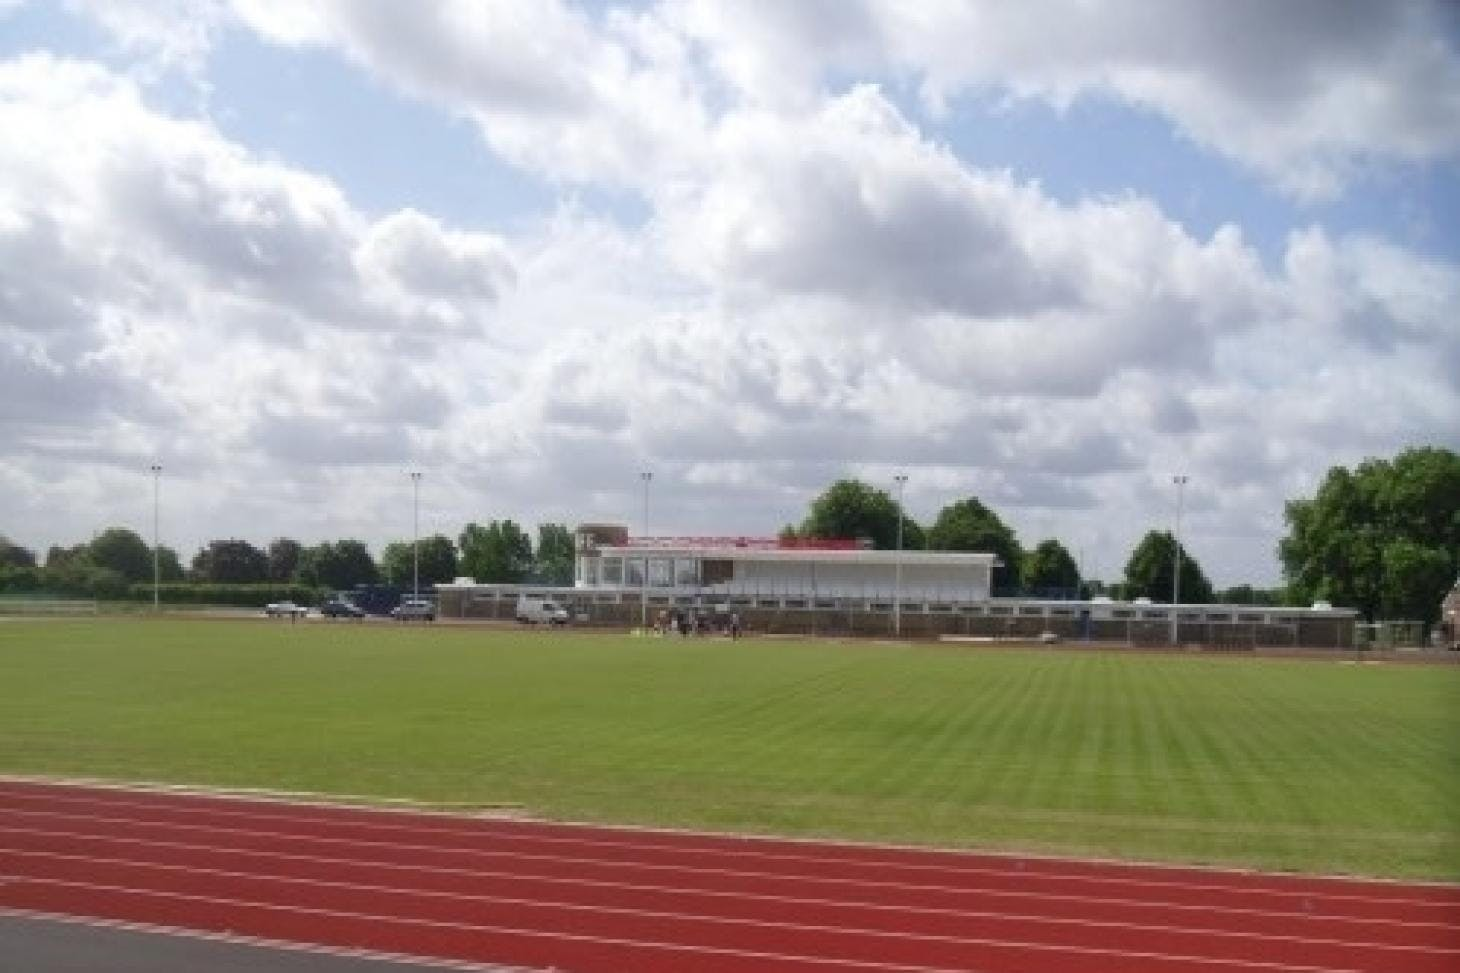 Queen Elizabeth Stadium Enfield 11 a side | Grass football pitch